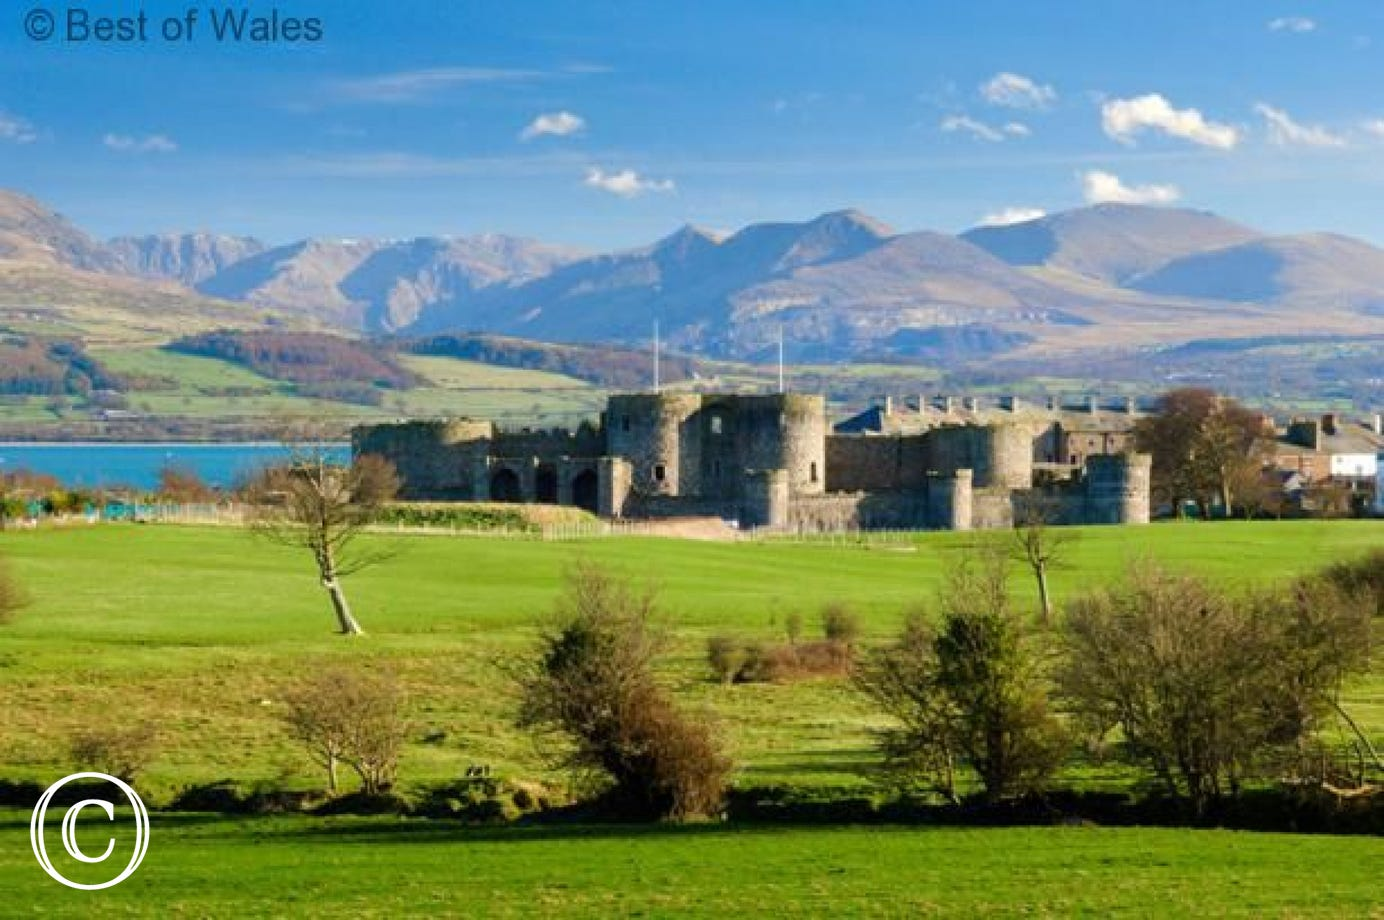 Beaumaris Castle with Menai Strait and Snowdonia in the background